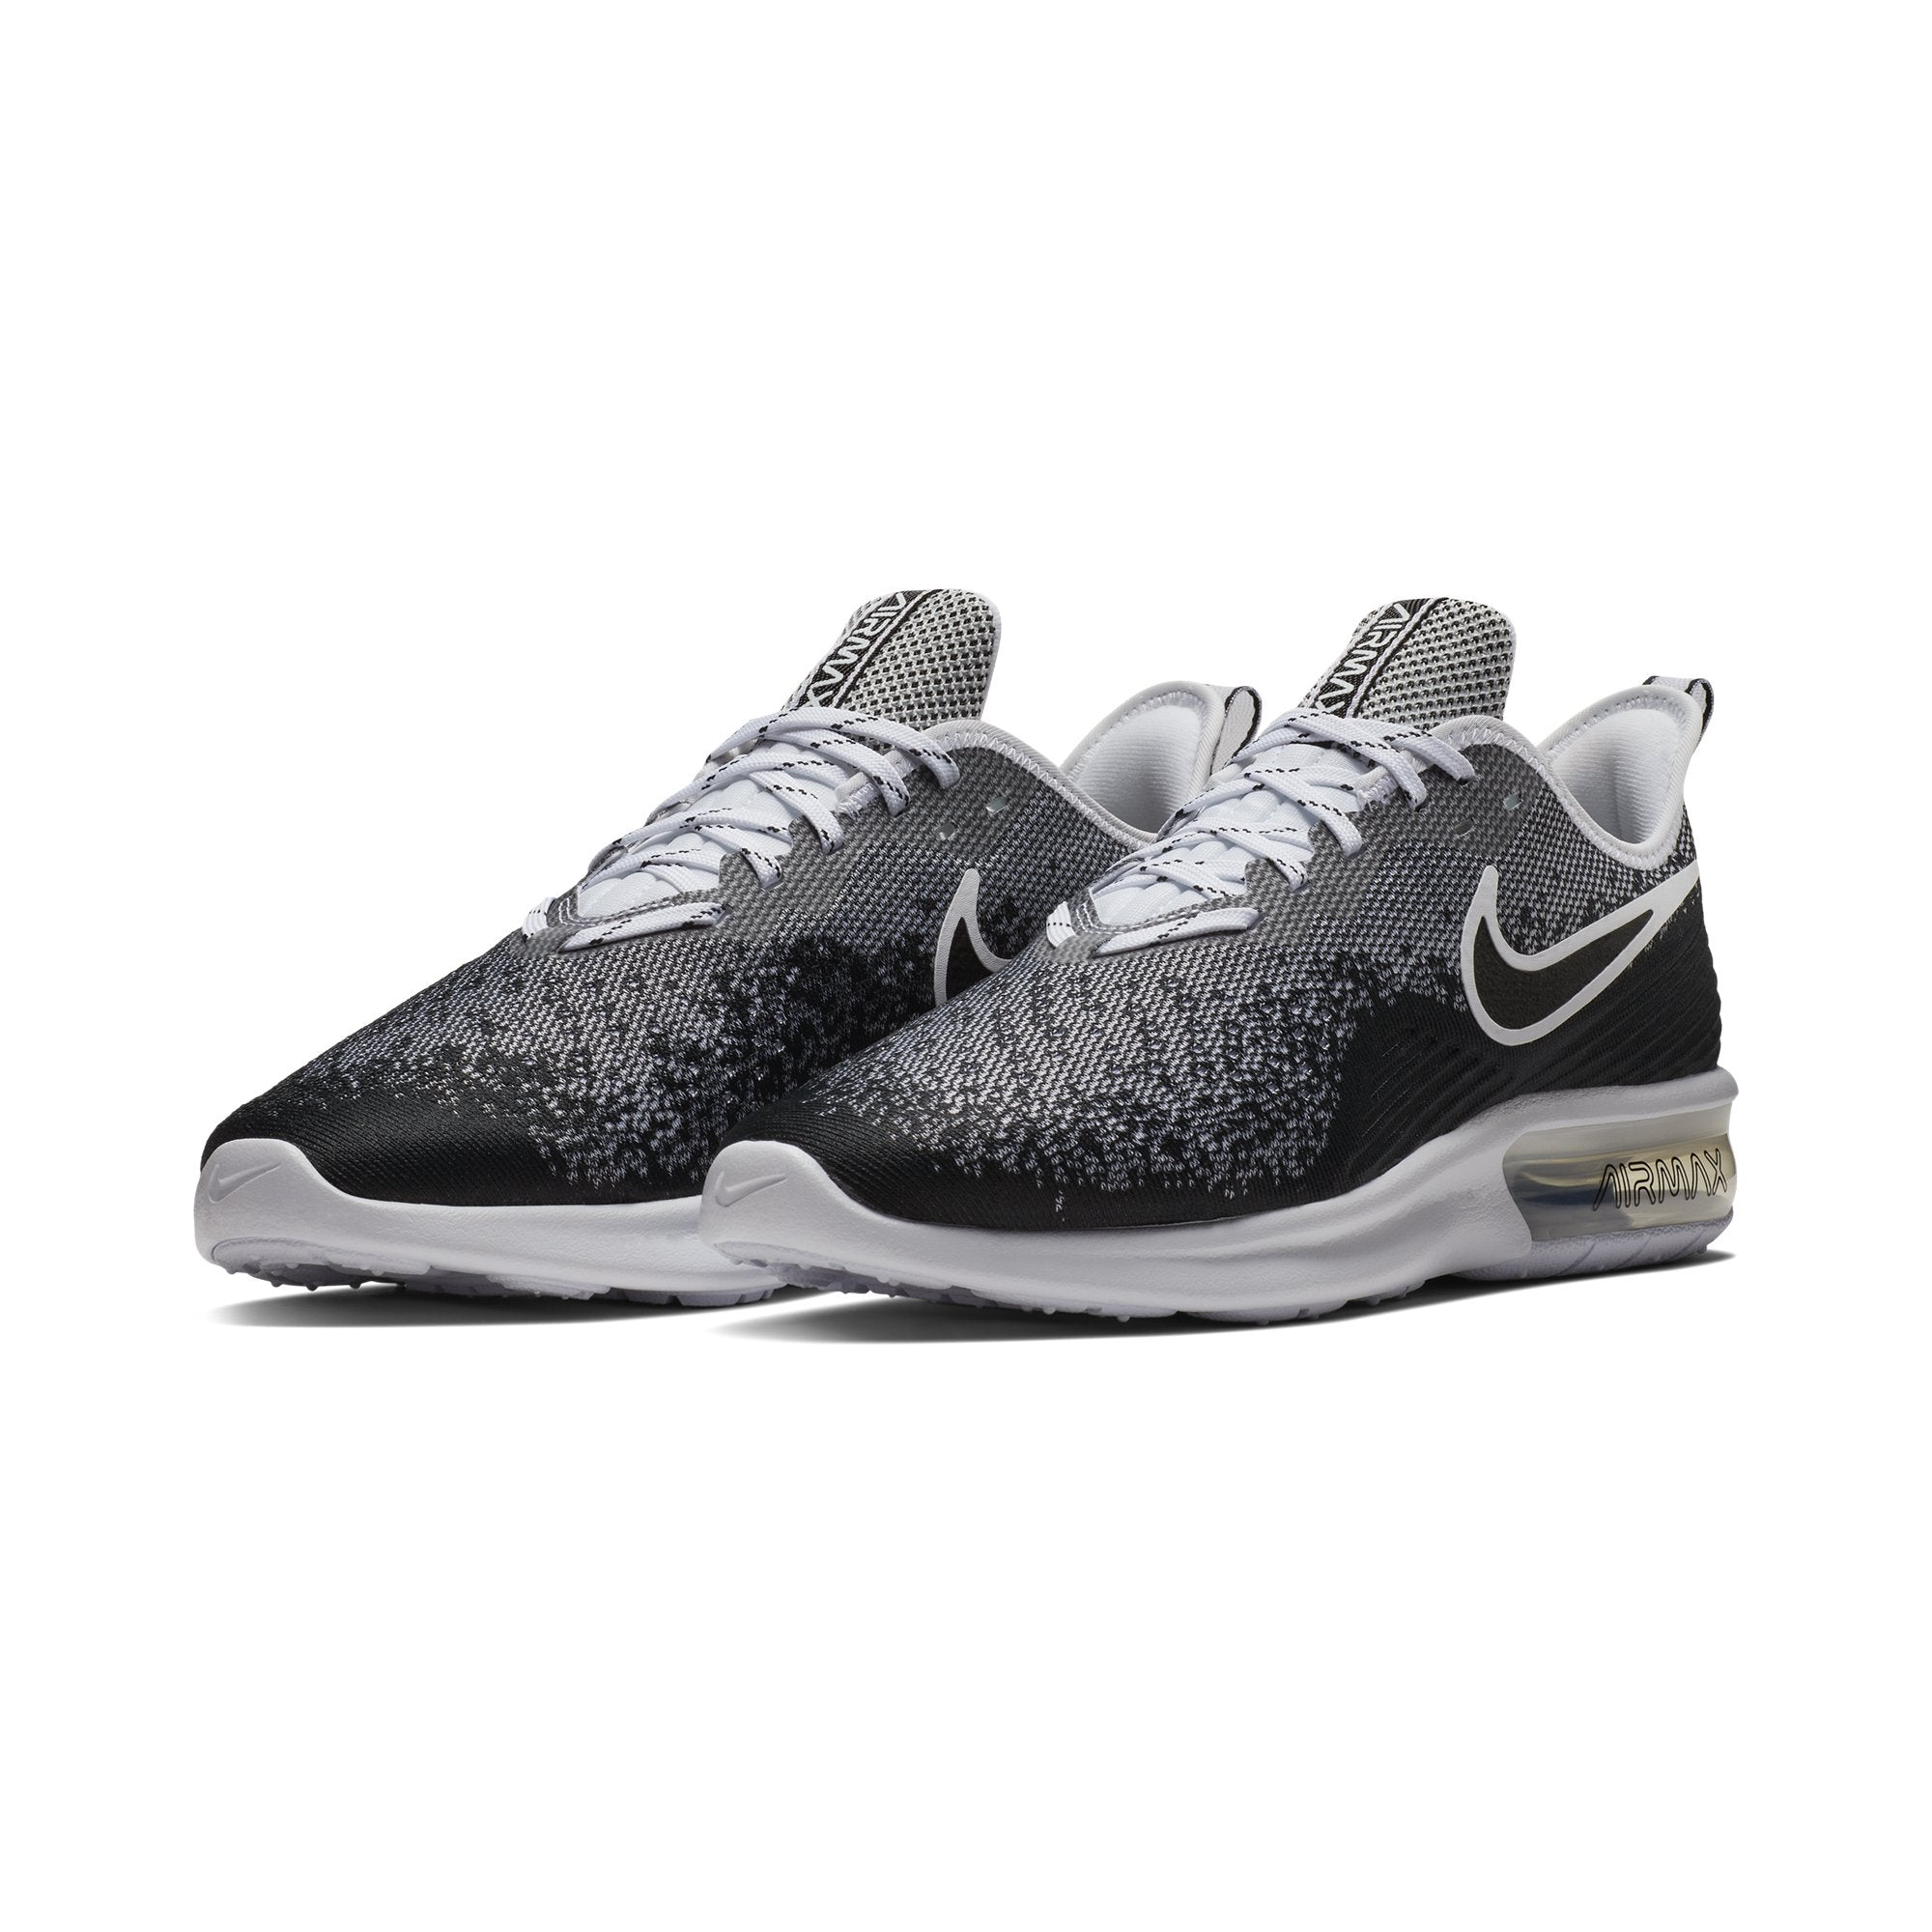 the best attitude ef8a4 a7510 Men s Air Max Sequent 4 Running Shoes, Black White